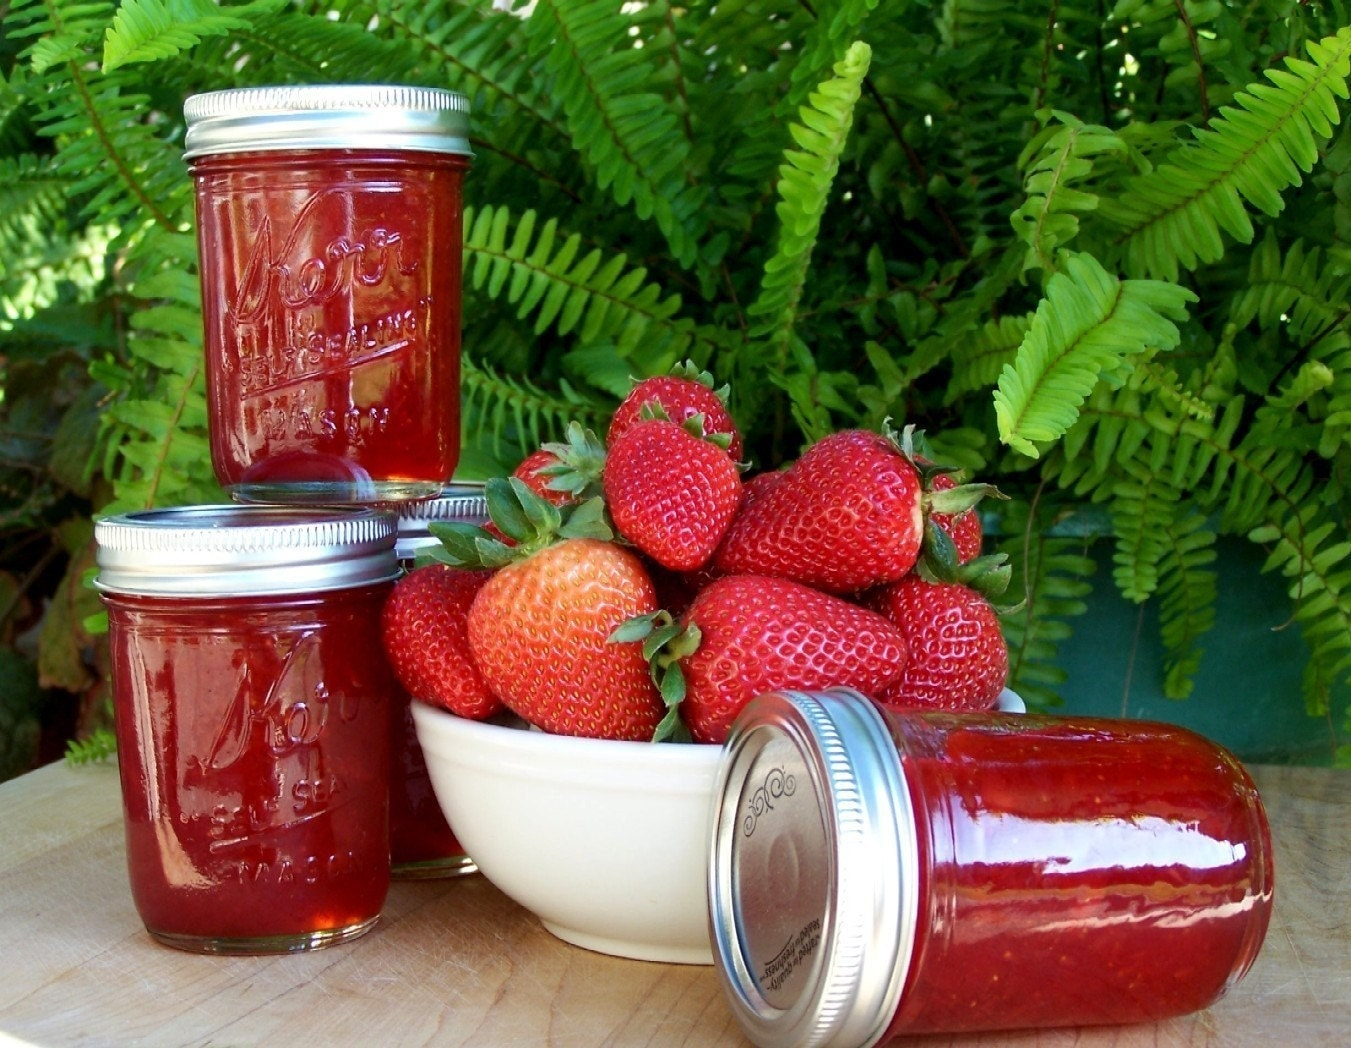 NEW Strawberry Pineapple Jam- 8 oz jar